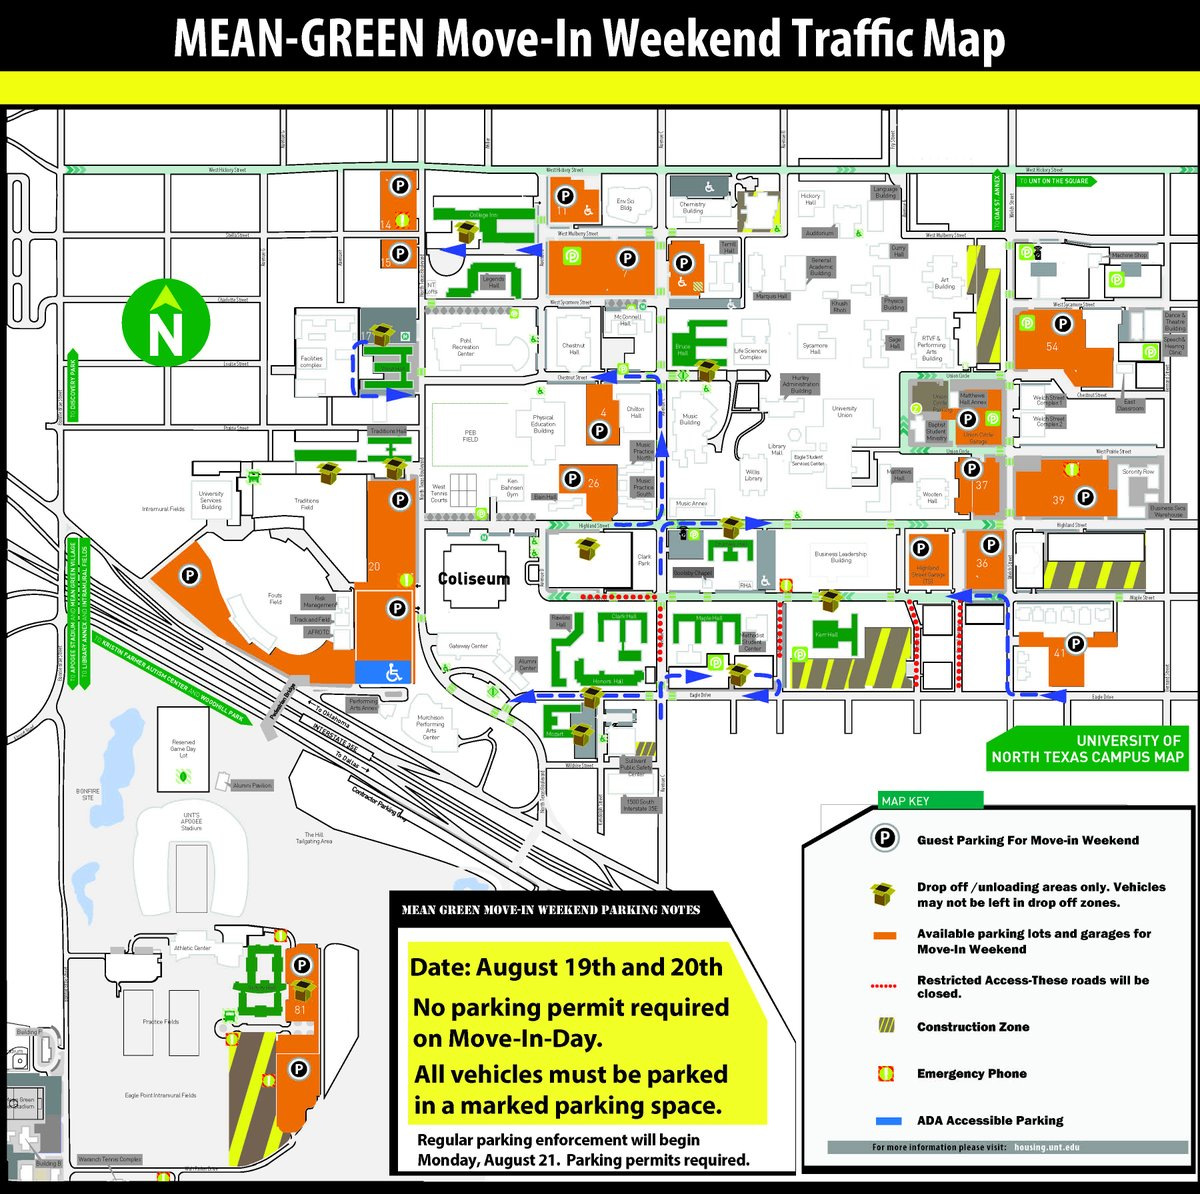 map of unt campus Unt Transportation On Twitter We Re Looking Forward To Having map of unt campus